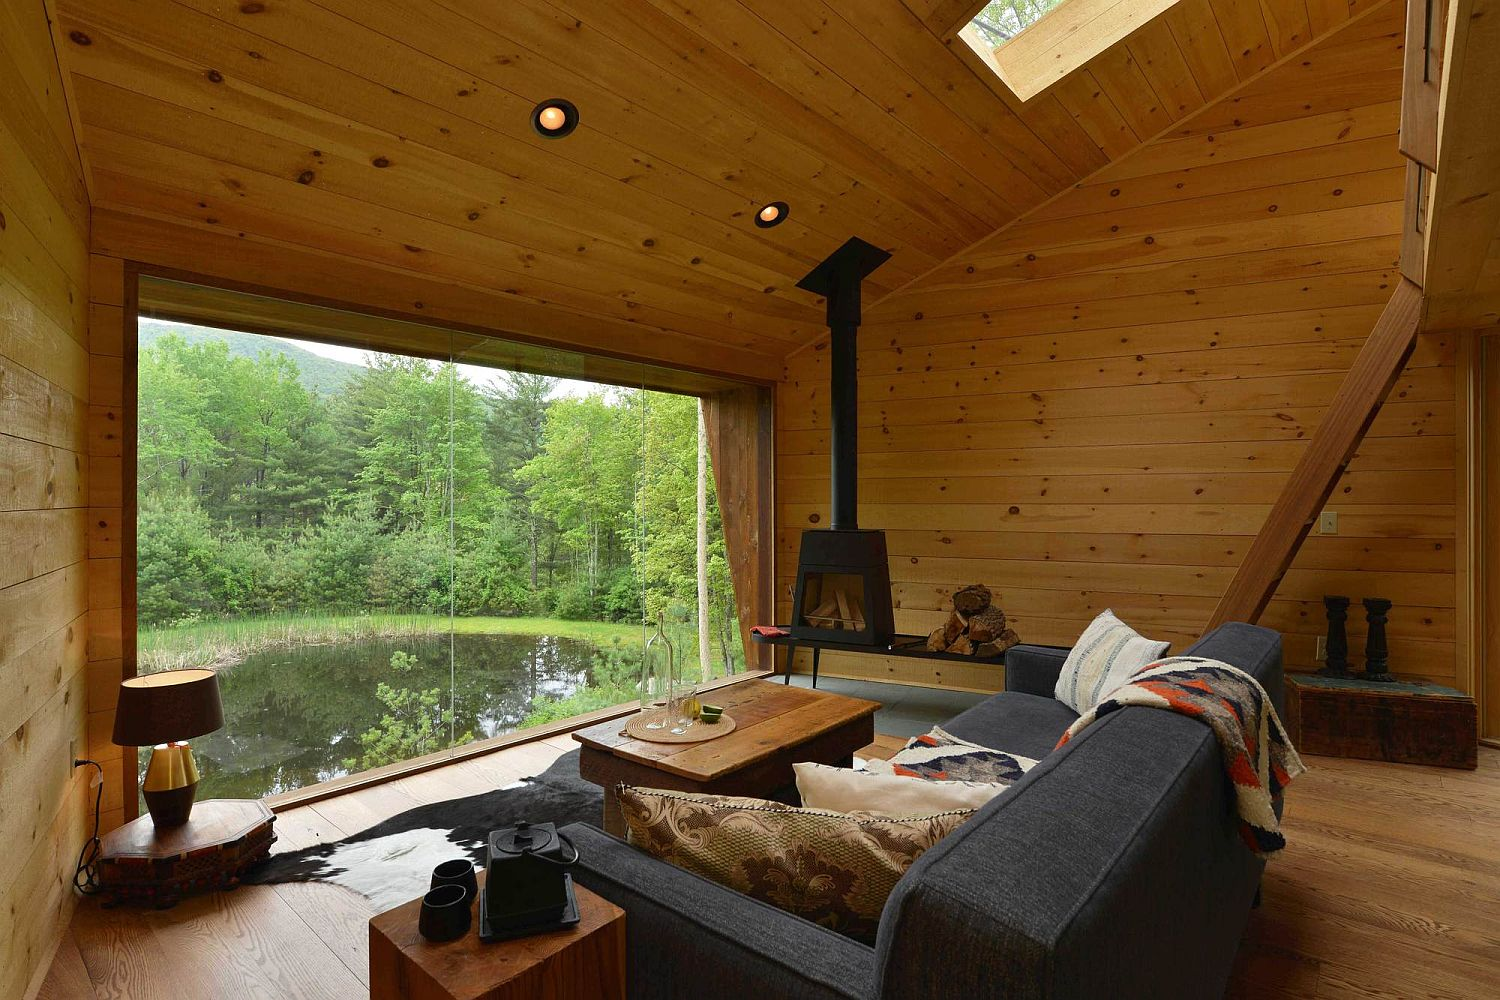 Woodsy interior of the Inhabit cabin with stunning views of the landscape